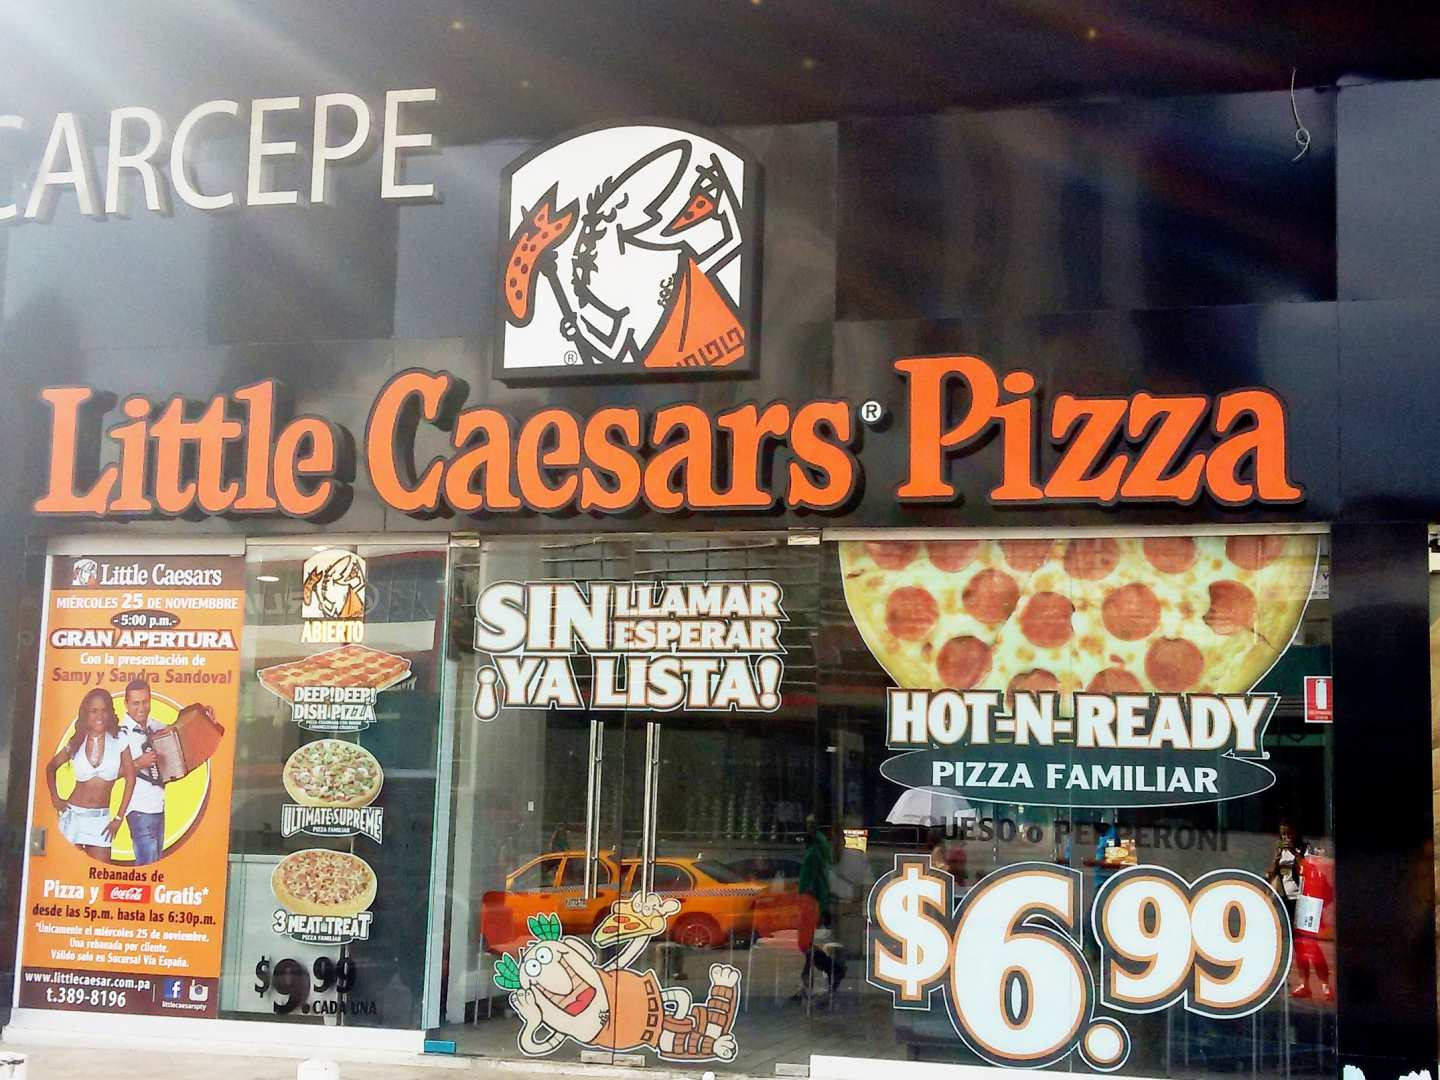 Little Caesars (Via España)